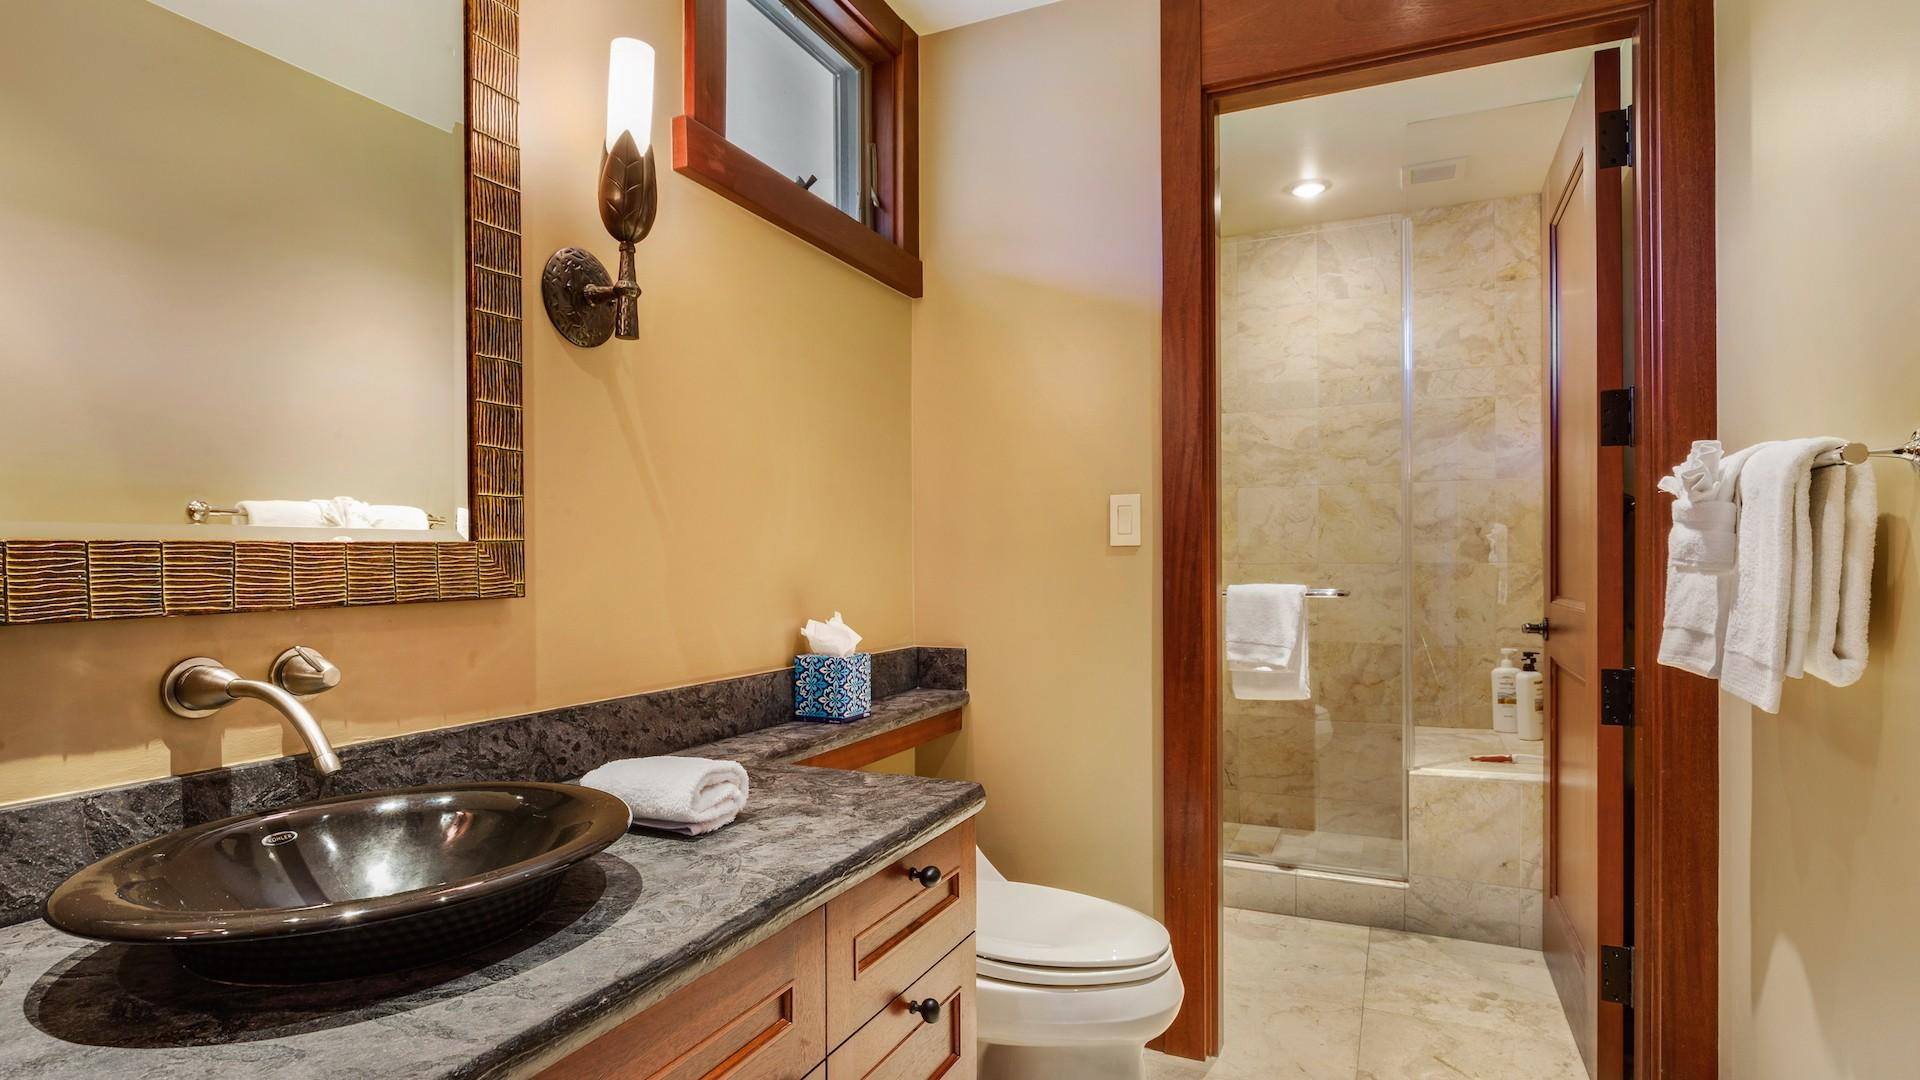 Second bathroom, with shower.